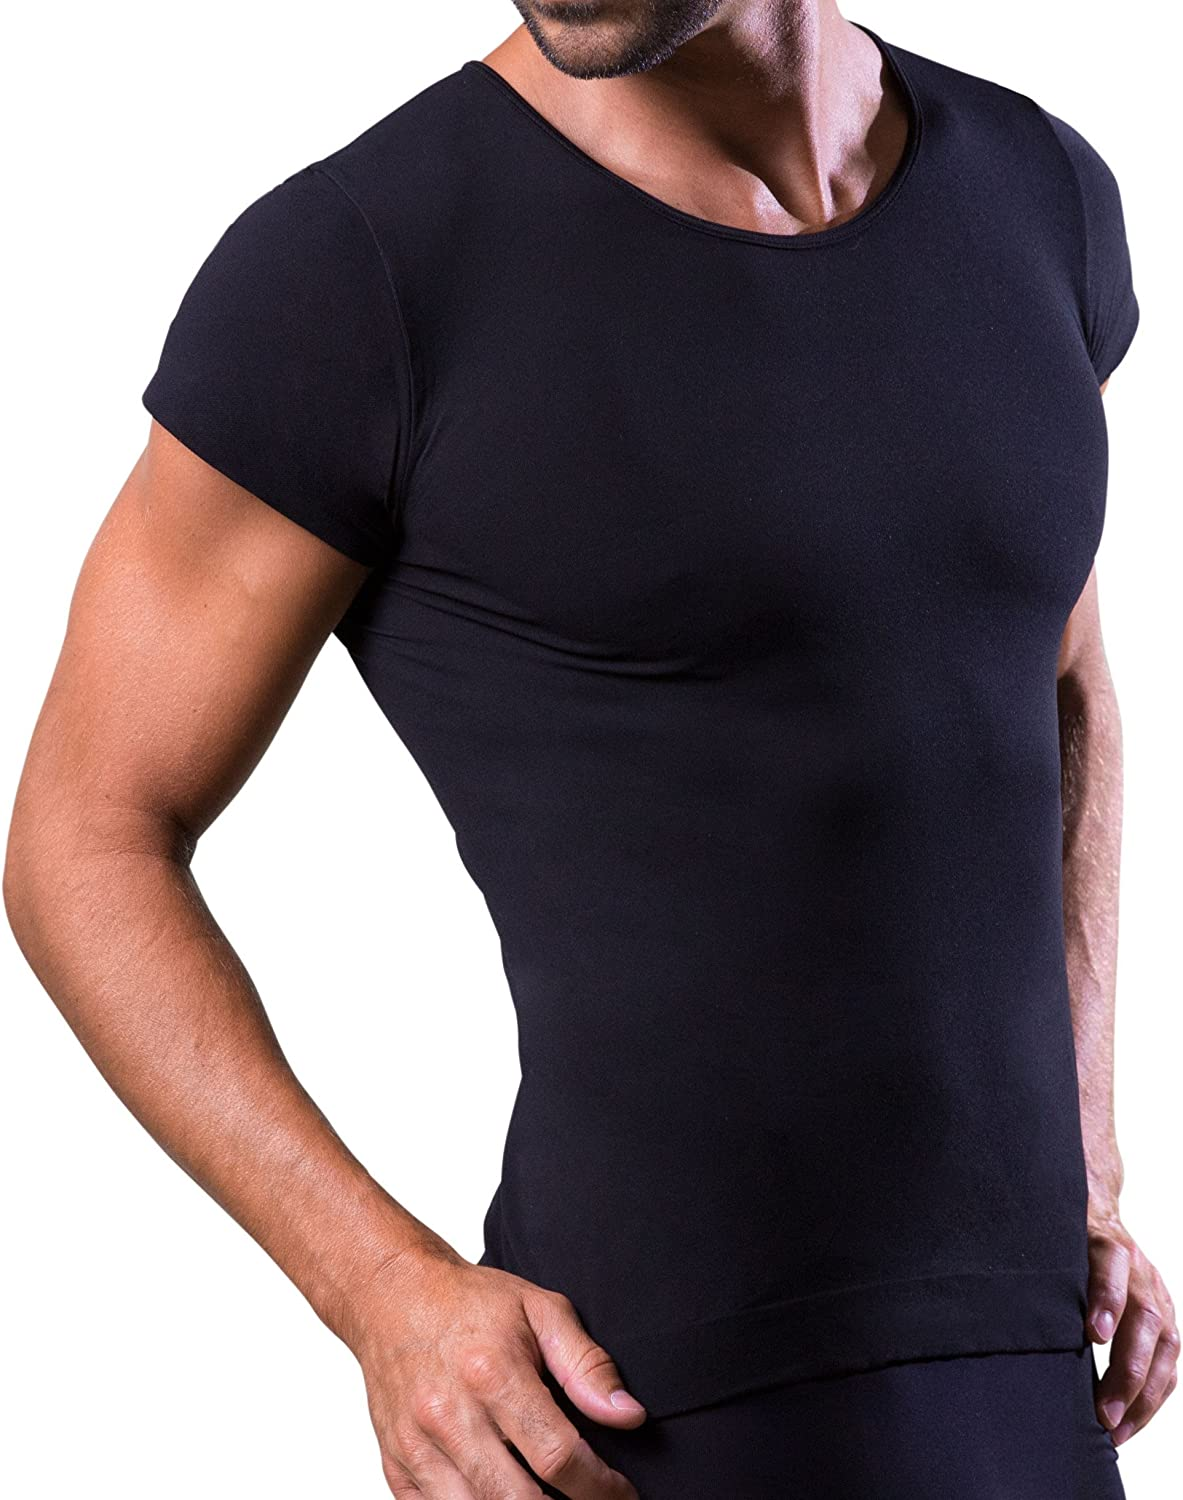 Dr.WALT - Men's Undershirt Vest Produced with Technical Sports Yarns for Everyday use, Thermal, Ultralight and Bacteriostatic